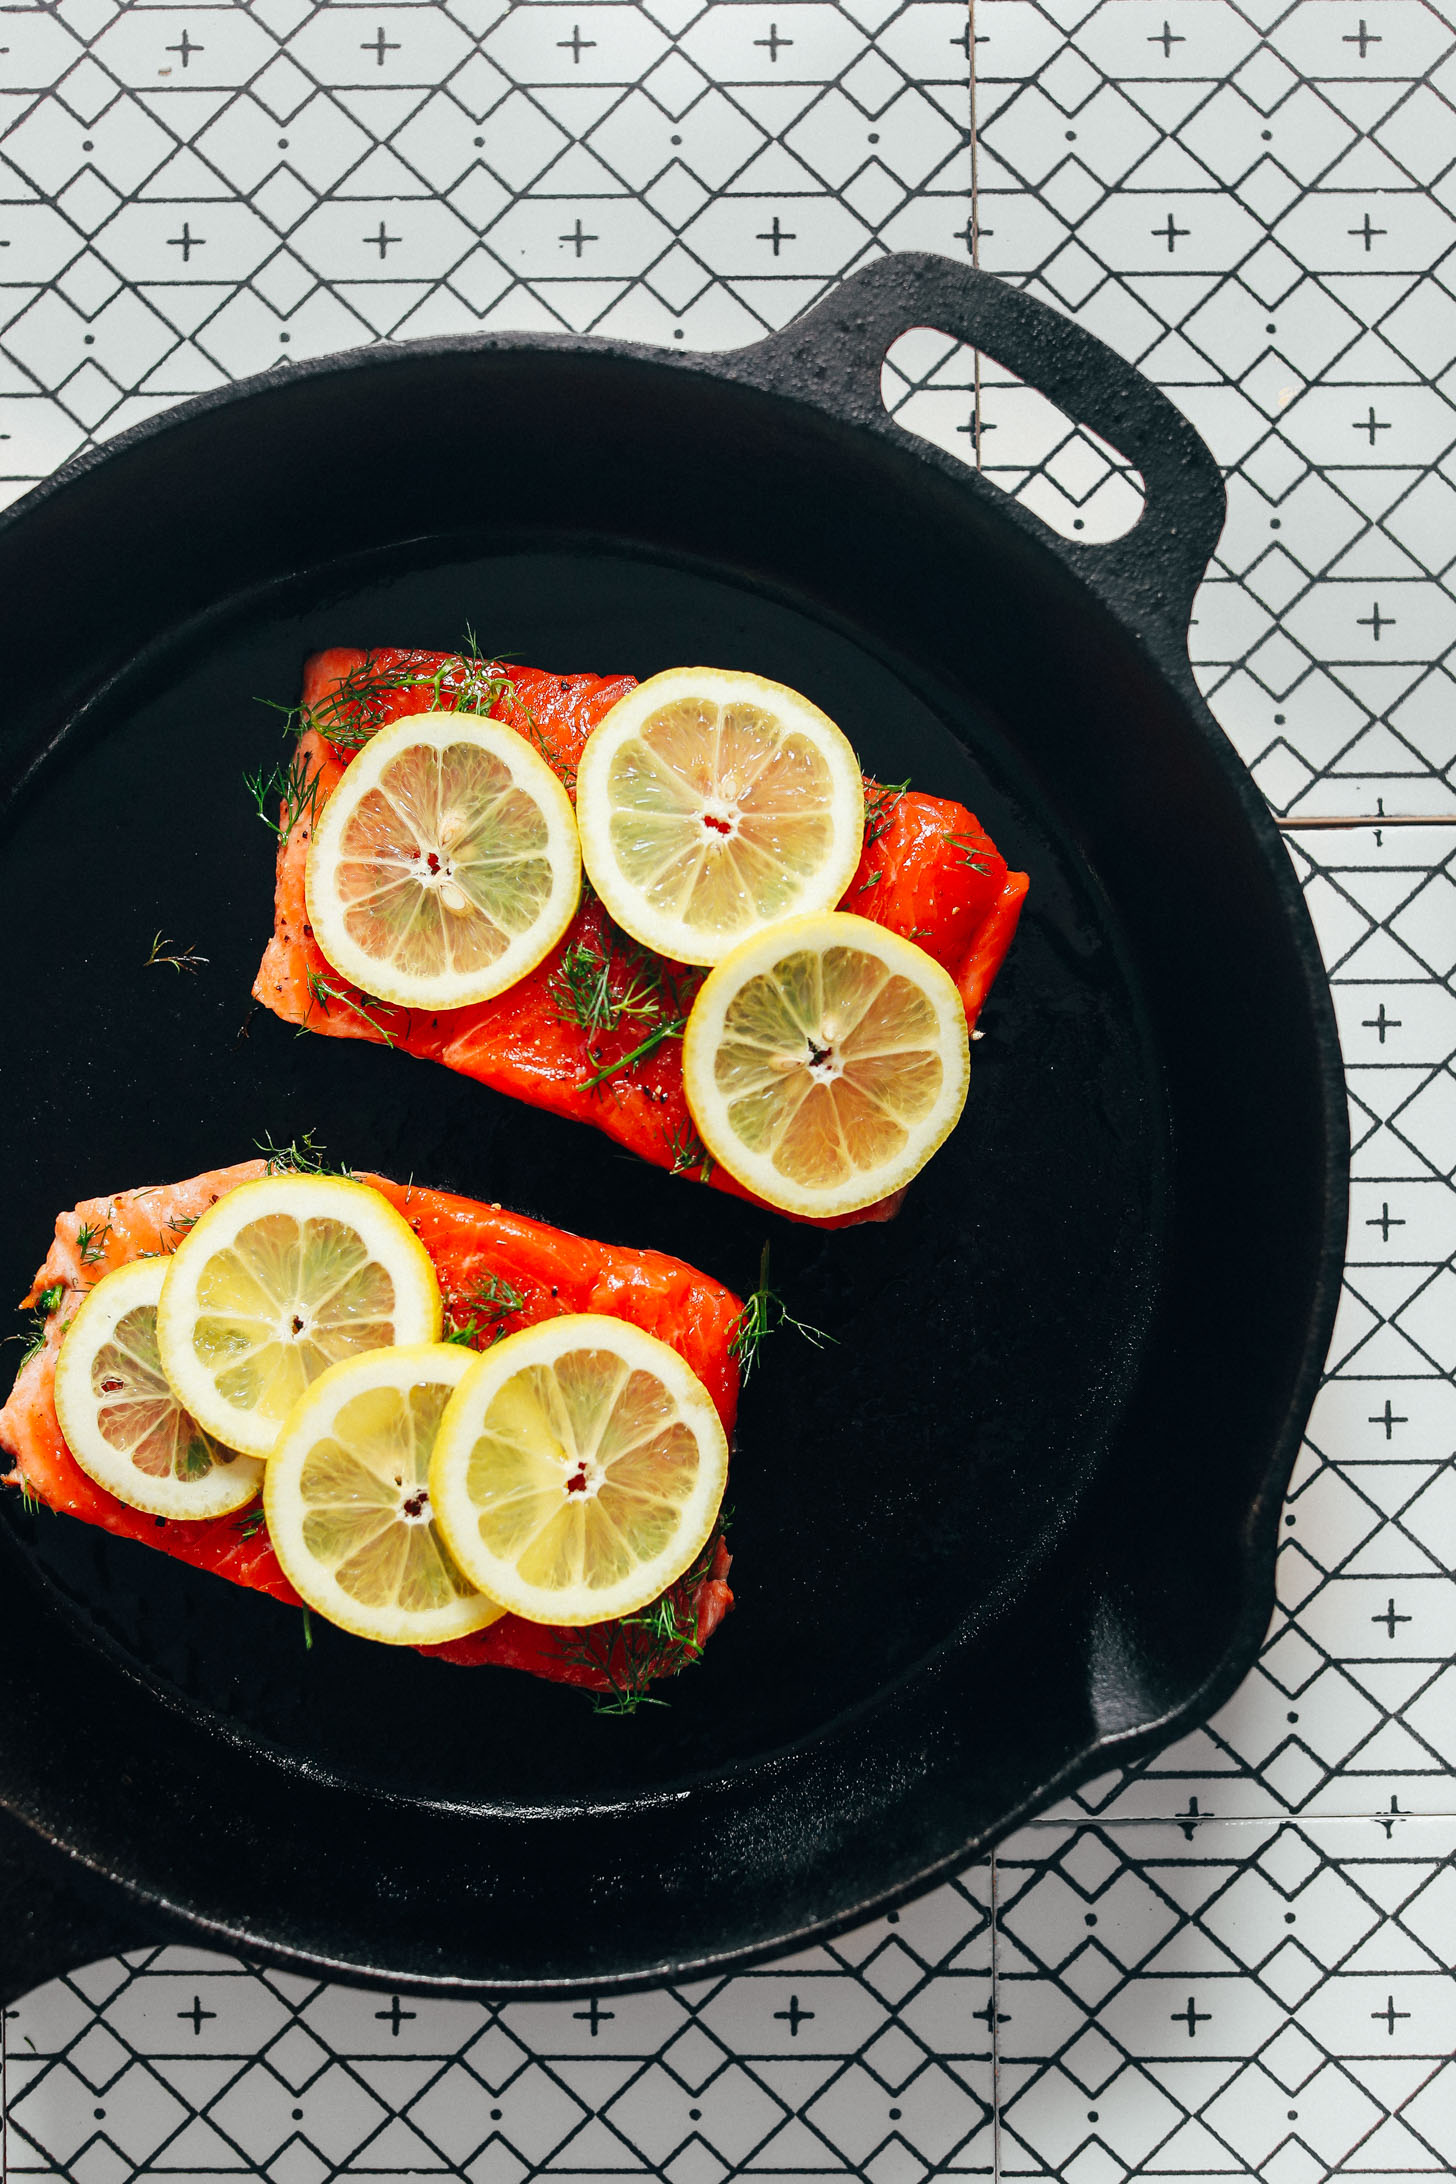 Cast-iron skillet with two filets of Lemon Baked Salmon with dill